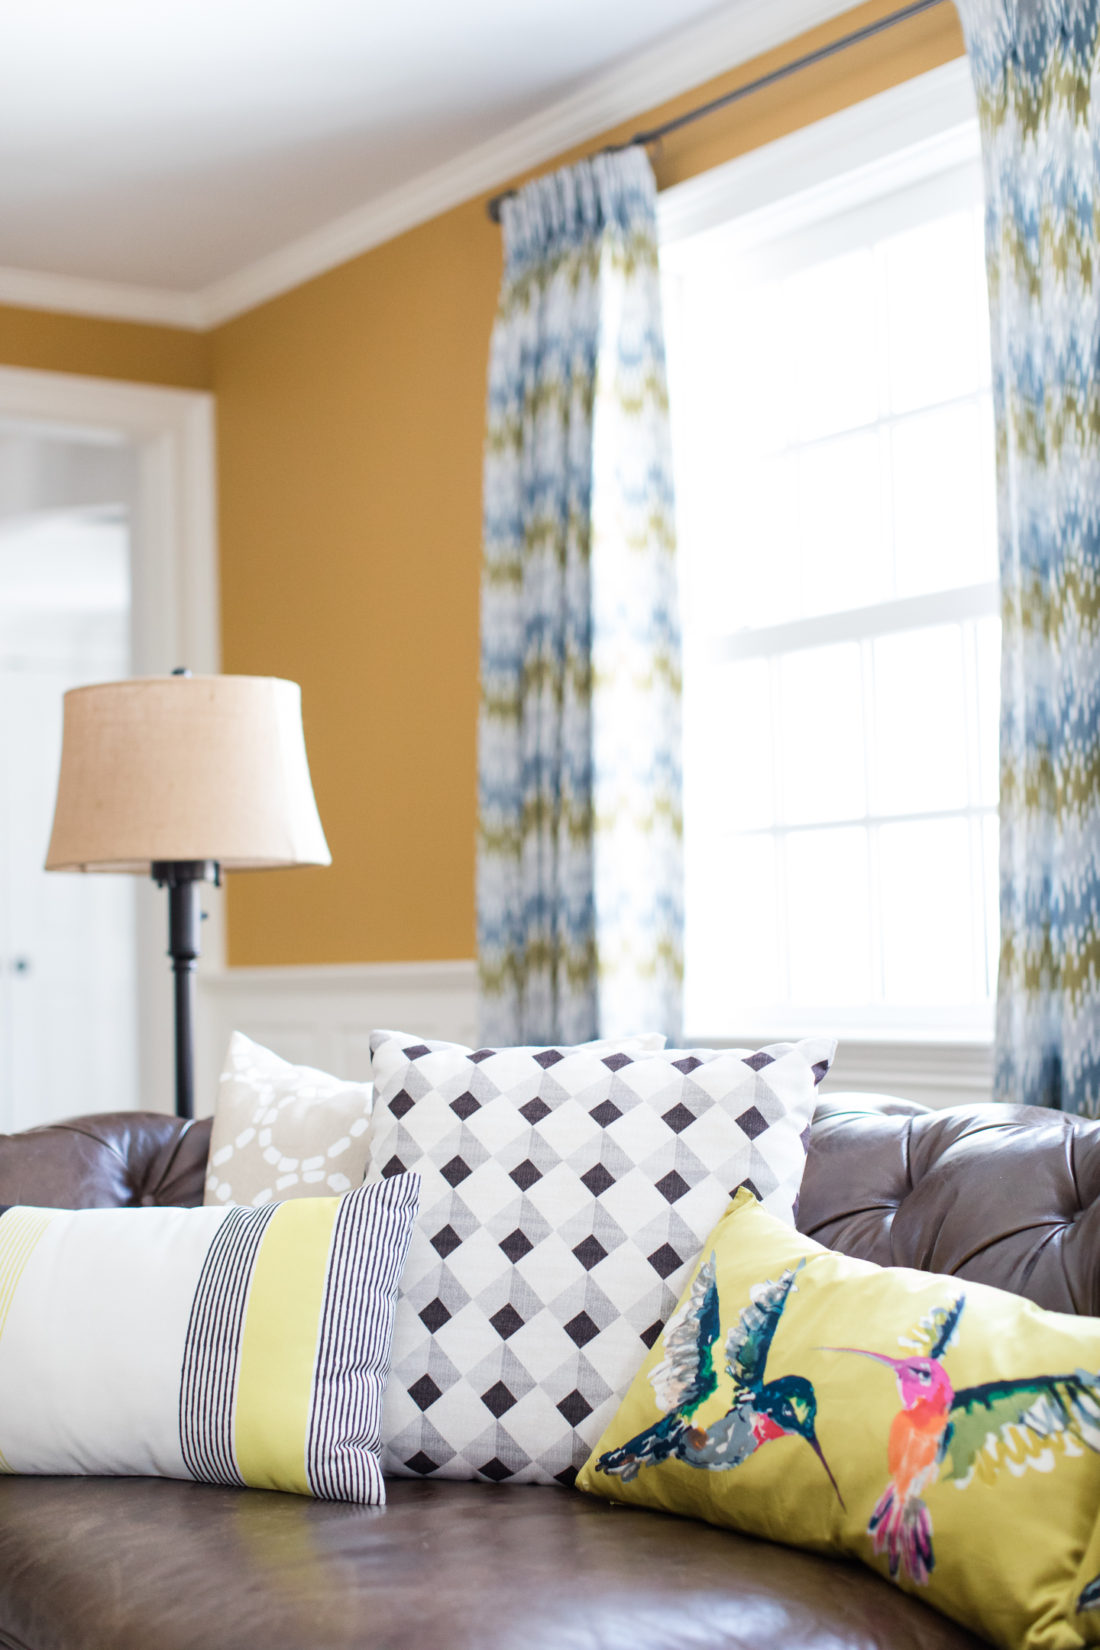 Black, white, natural, and yellow patterned couch pillows are scattered on the brown leather sofa in the formal living room of Eva Amurri Martino's connecticut home